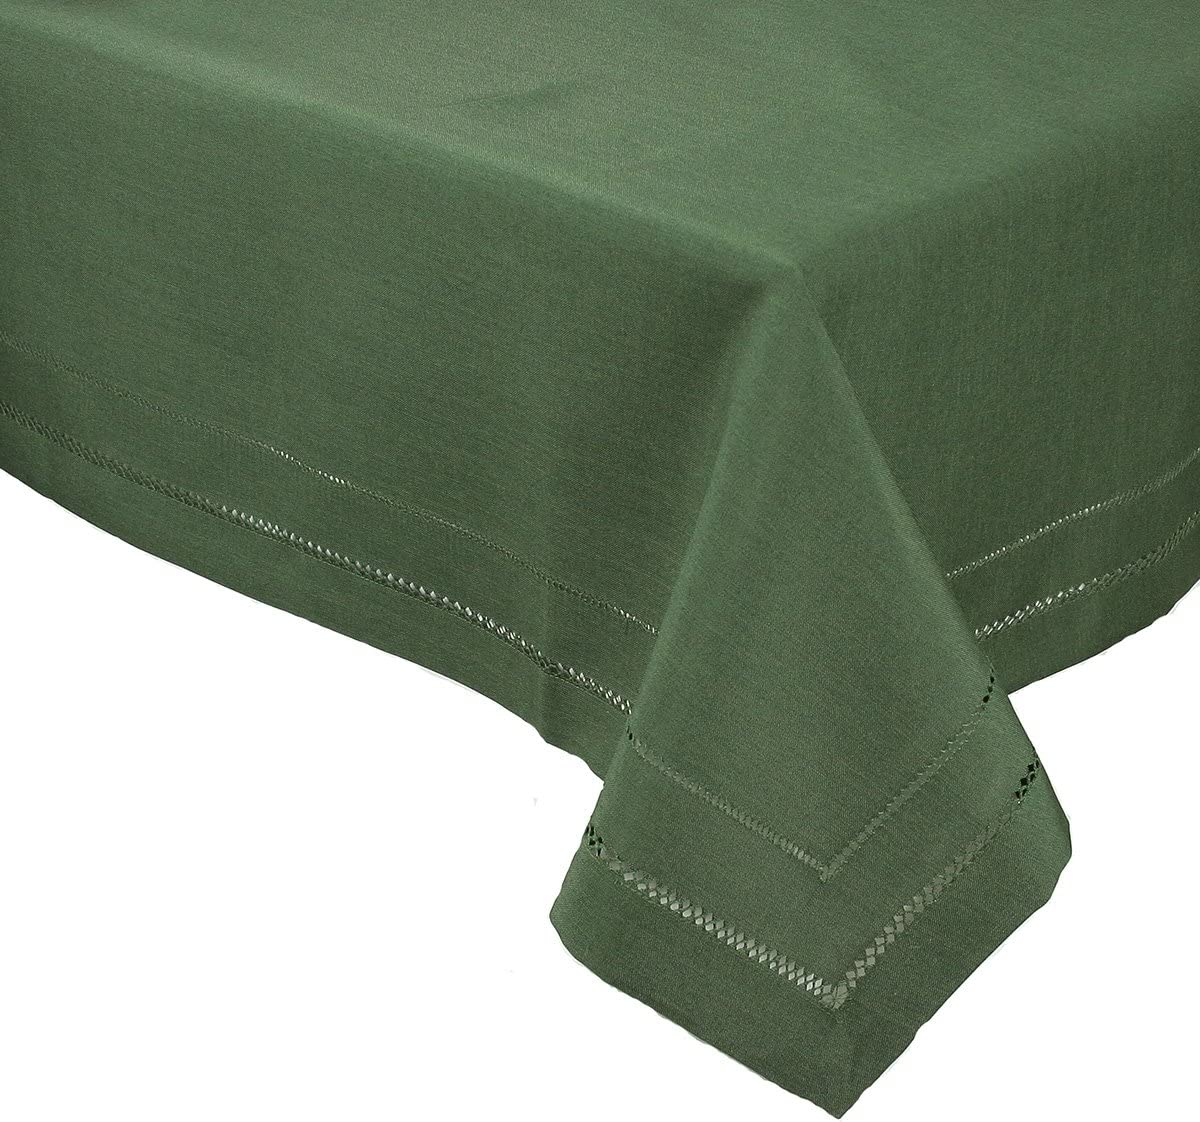 Xia Home Fashions Double Hemstitch Easy Care Tablecloth, 65 by 140-Inch, Pine